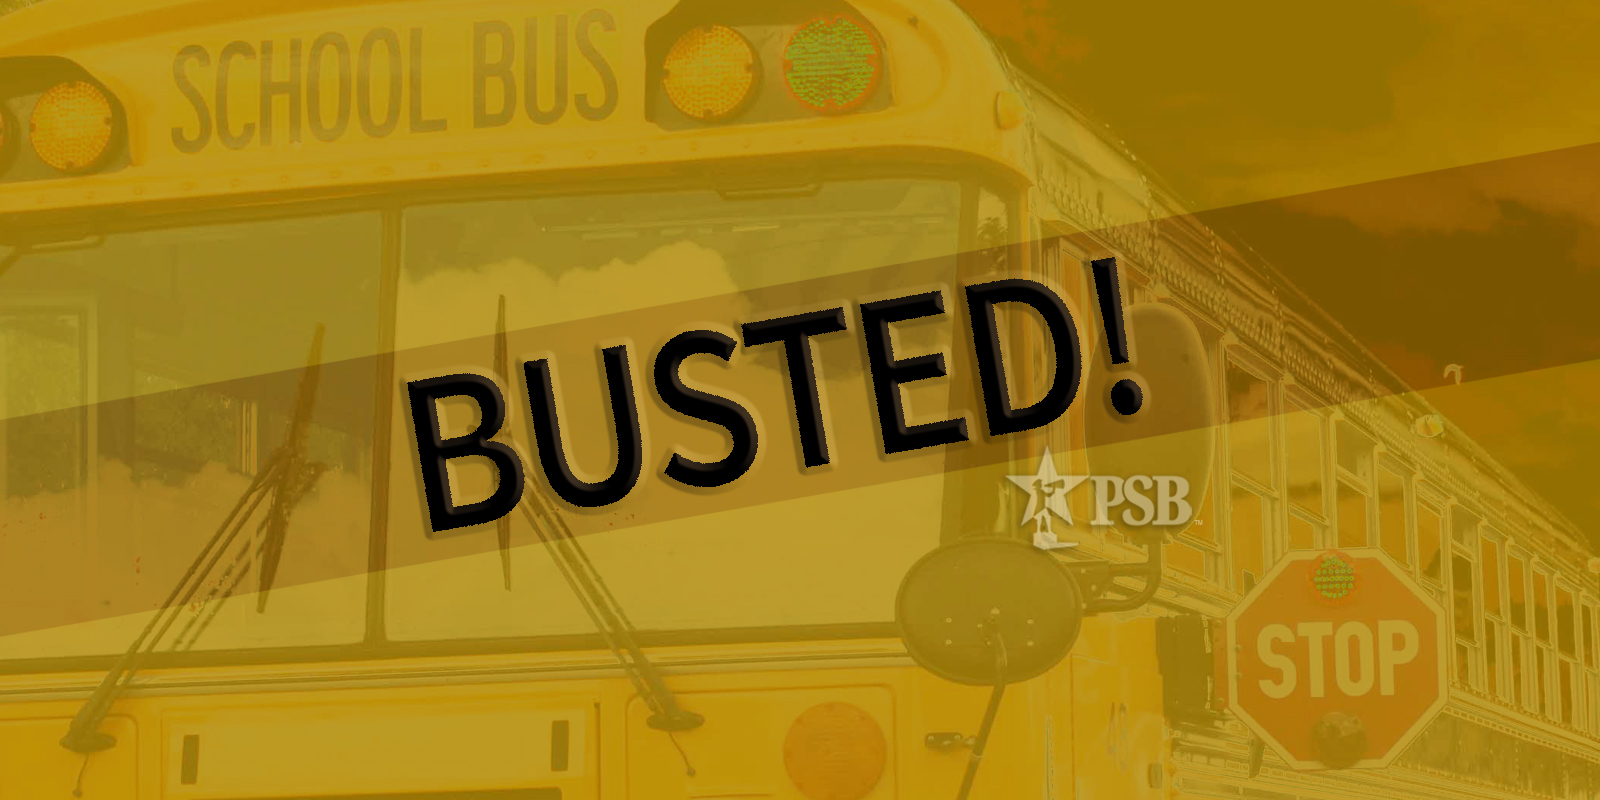 Former School Bus Driver Indicted with Possession of Child Pornography